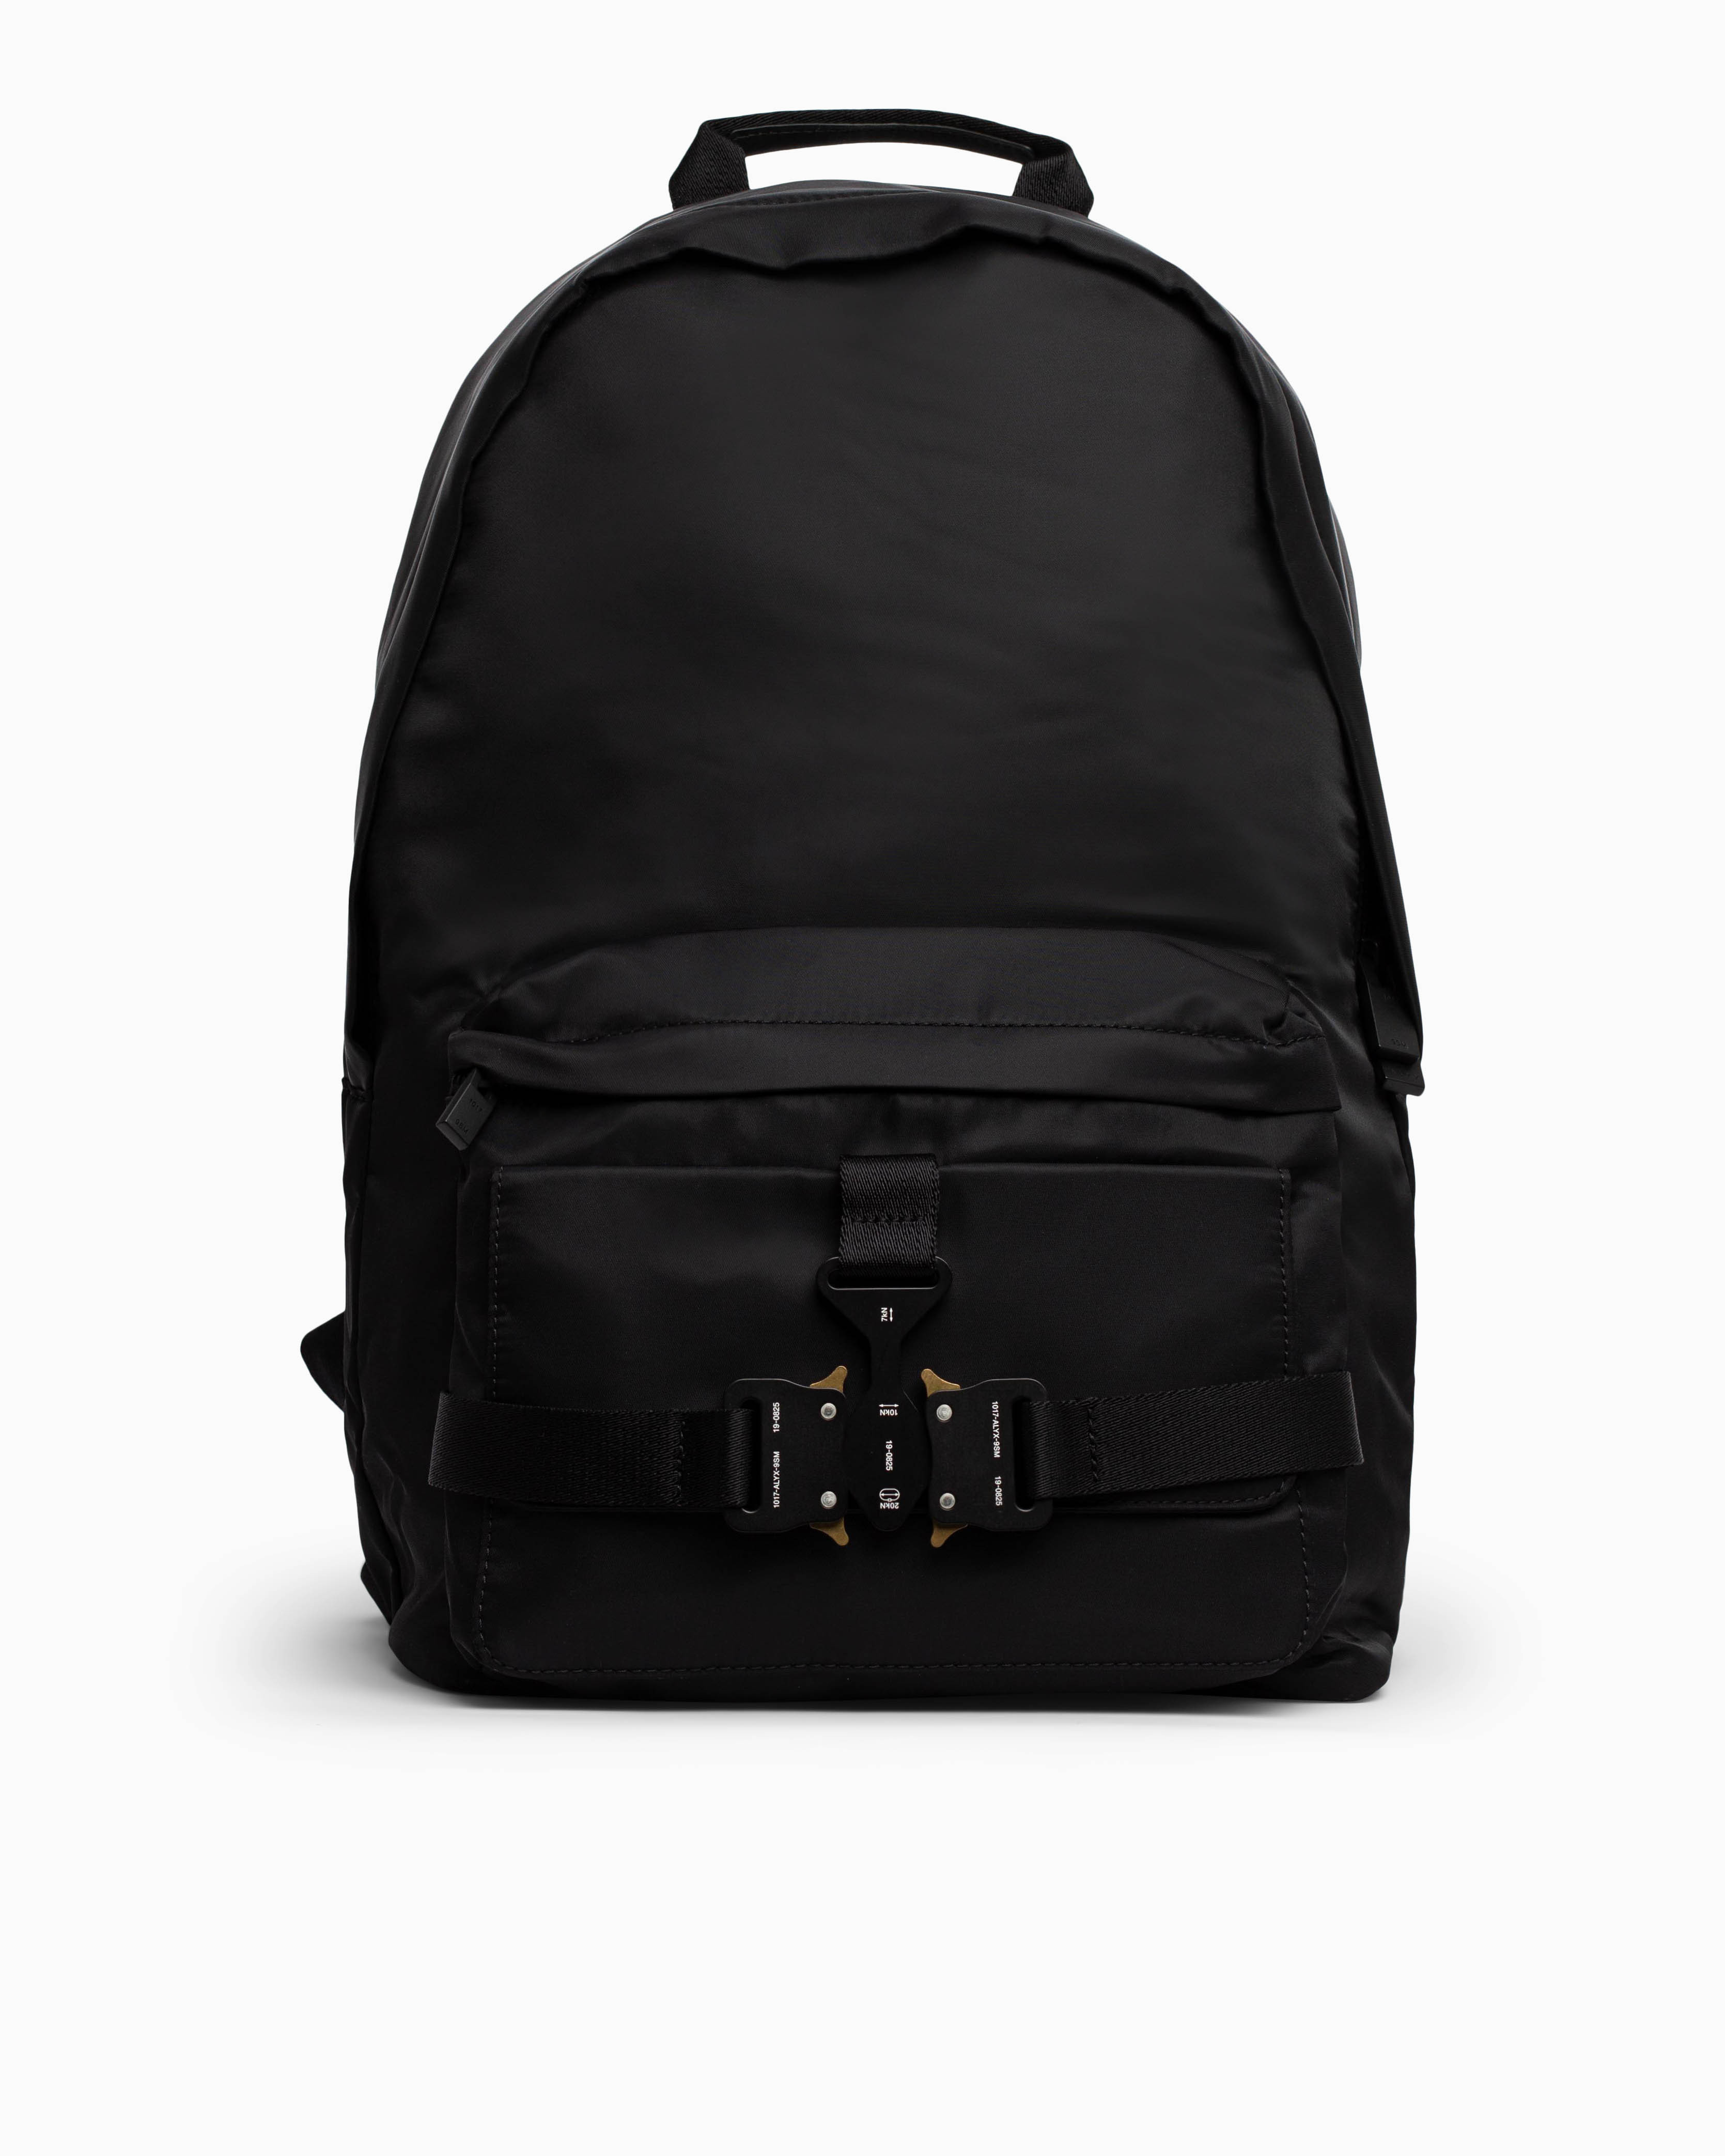 ALYX --- TRICON BACKPACK BLACK バックパック 黒 (ALYX/バックパック・リュック) AAUBA0017FA02 BLK0001